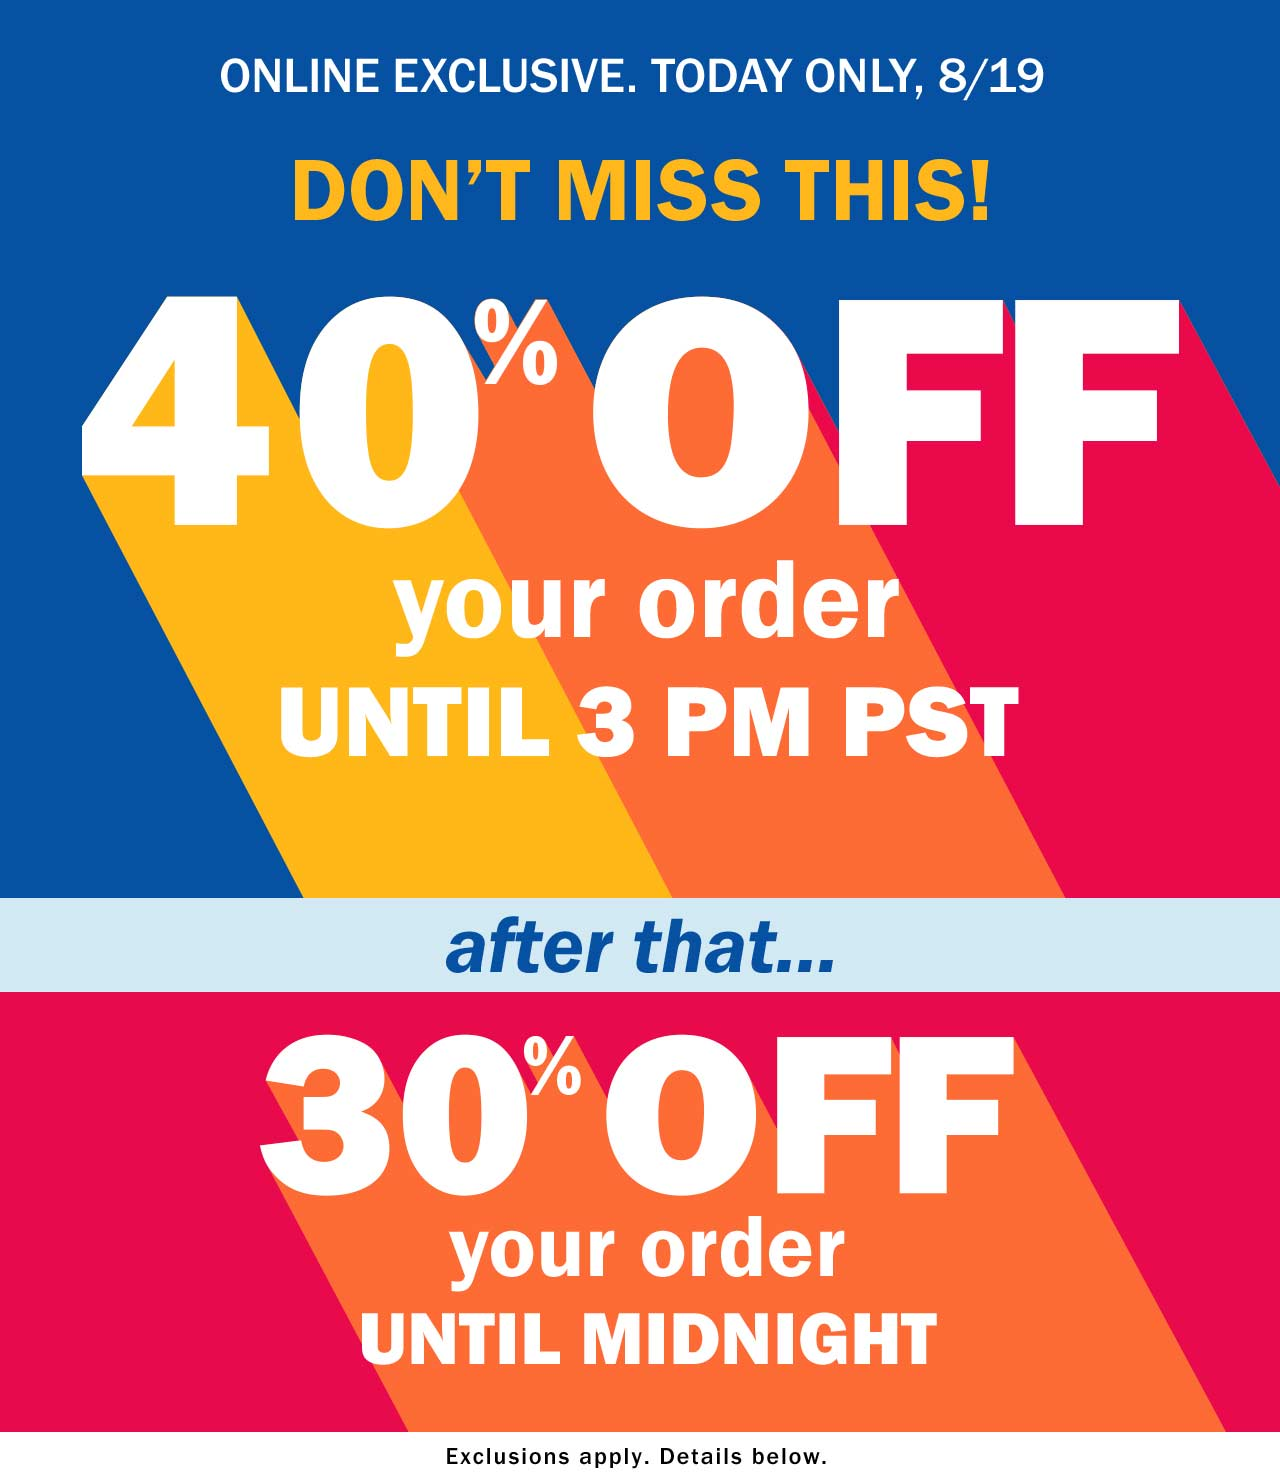 DON'T MISS THIS! 40% OFF your order UNTIL 3 PM PST | after that... 30% OFF